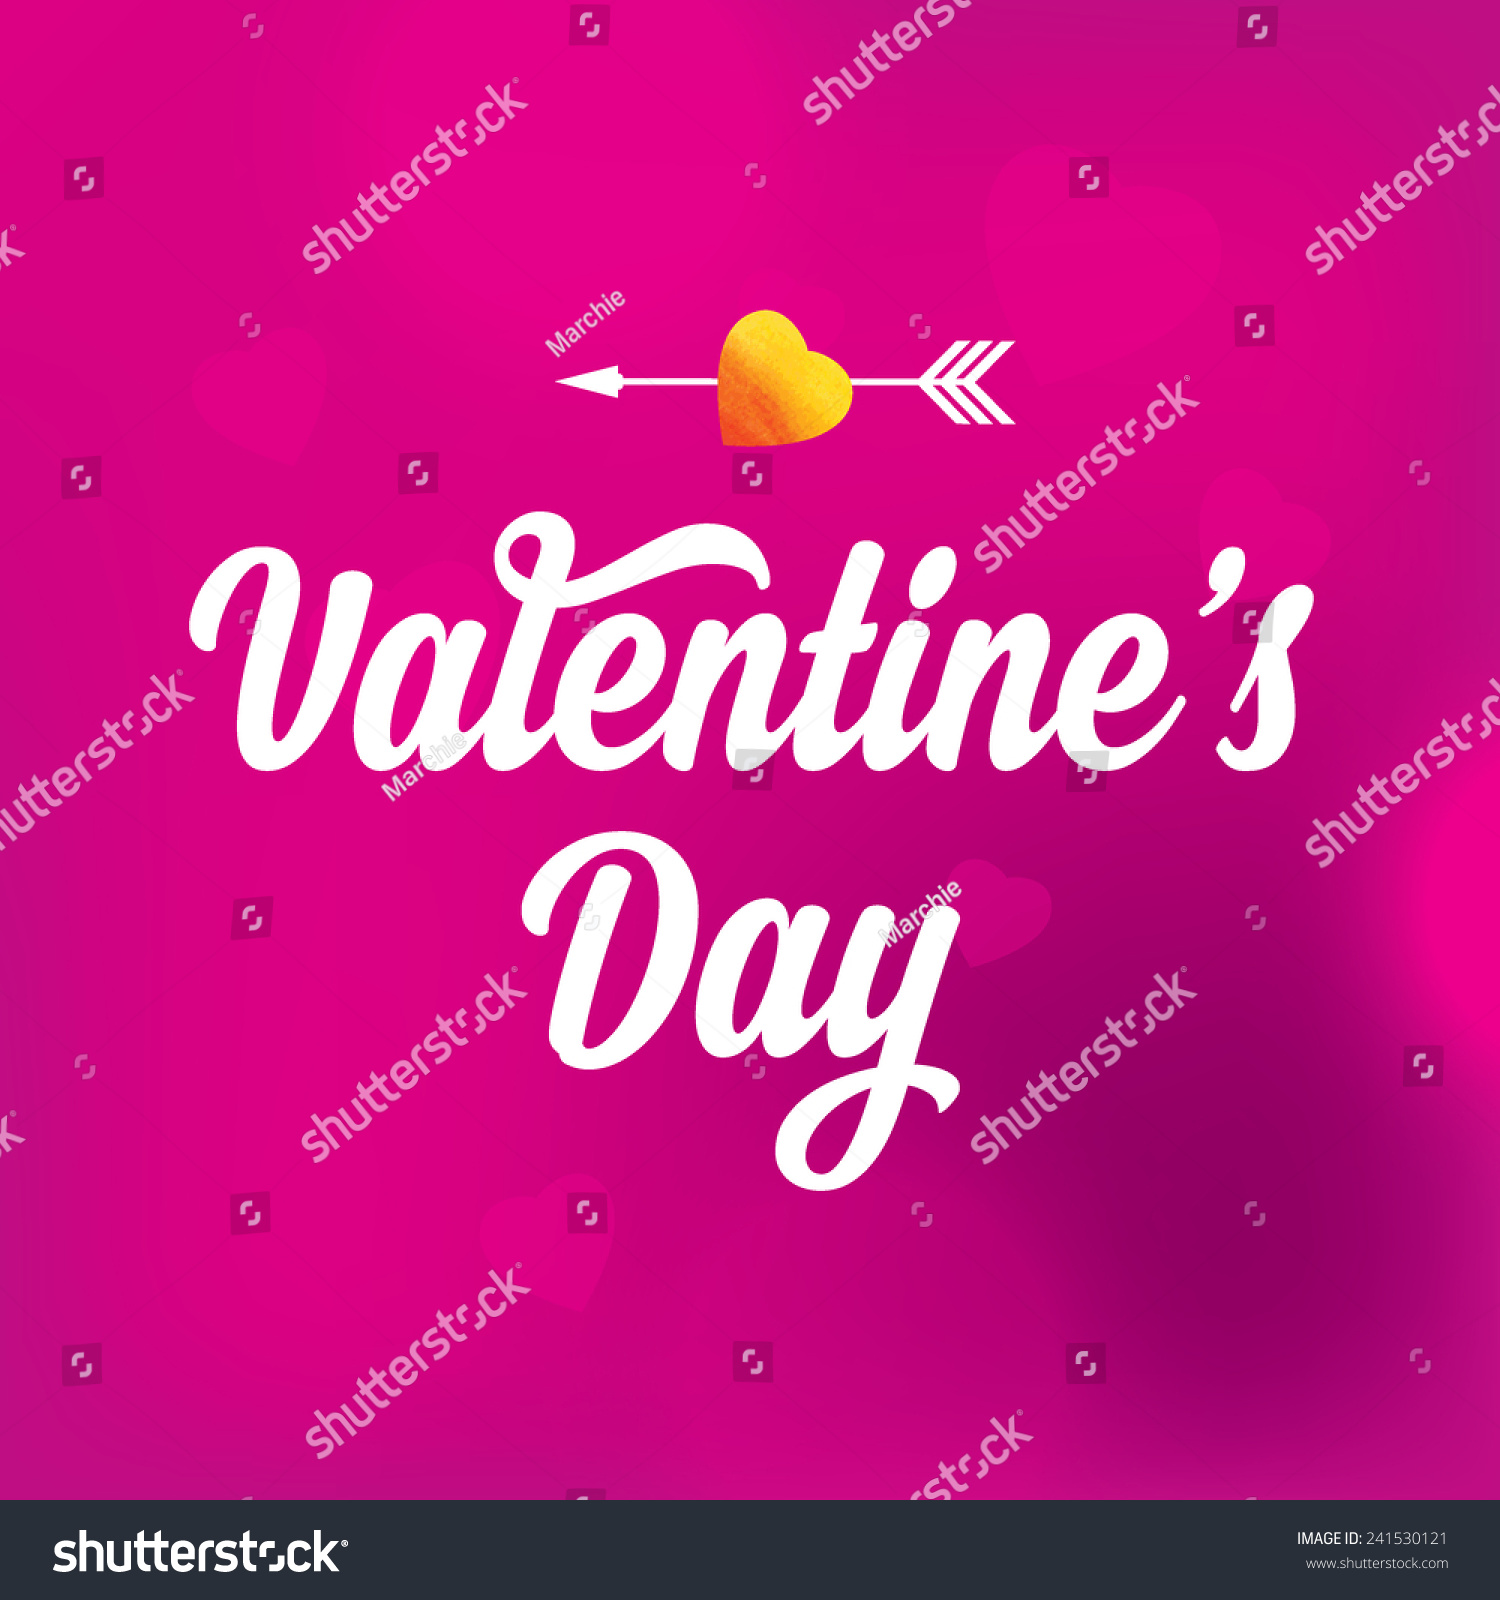 Valentines Day Love Quotes Valentines Day Postertypography Love Quote Stock Vector 241530121